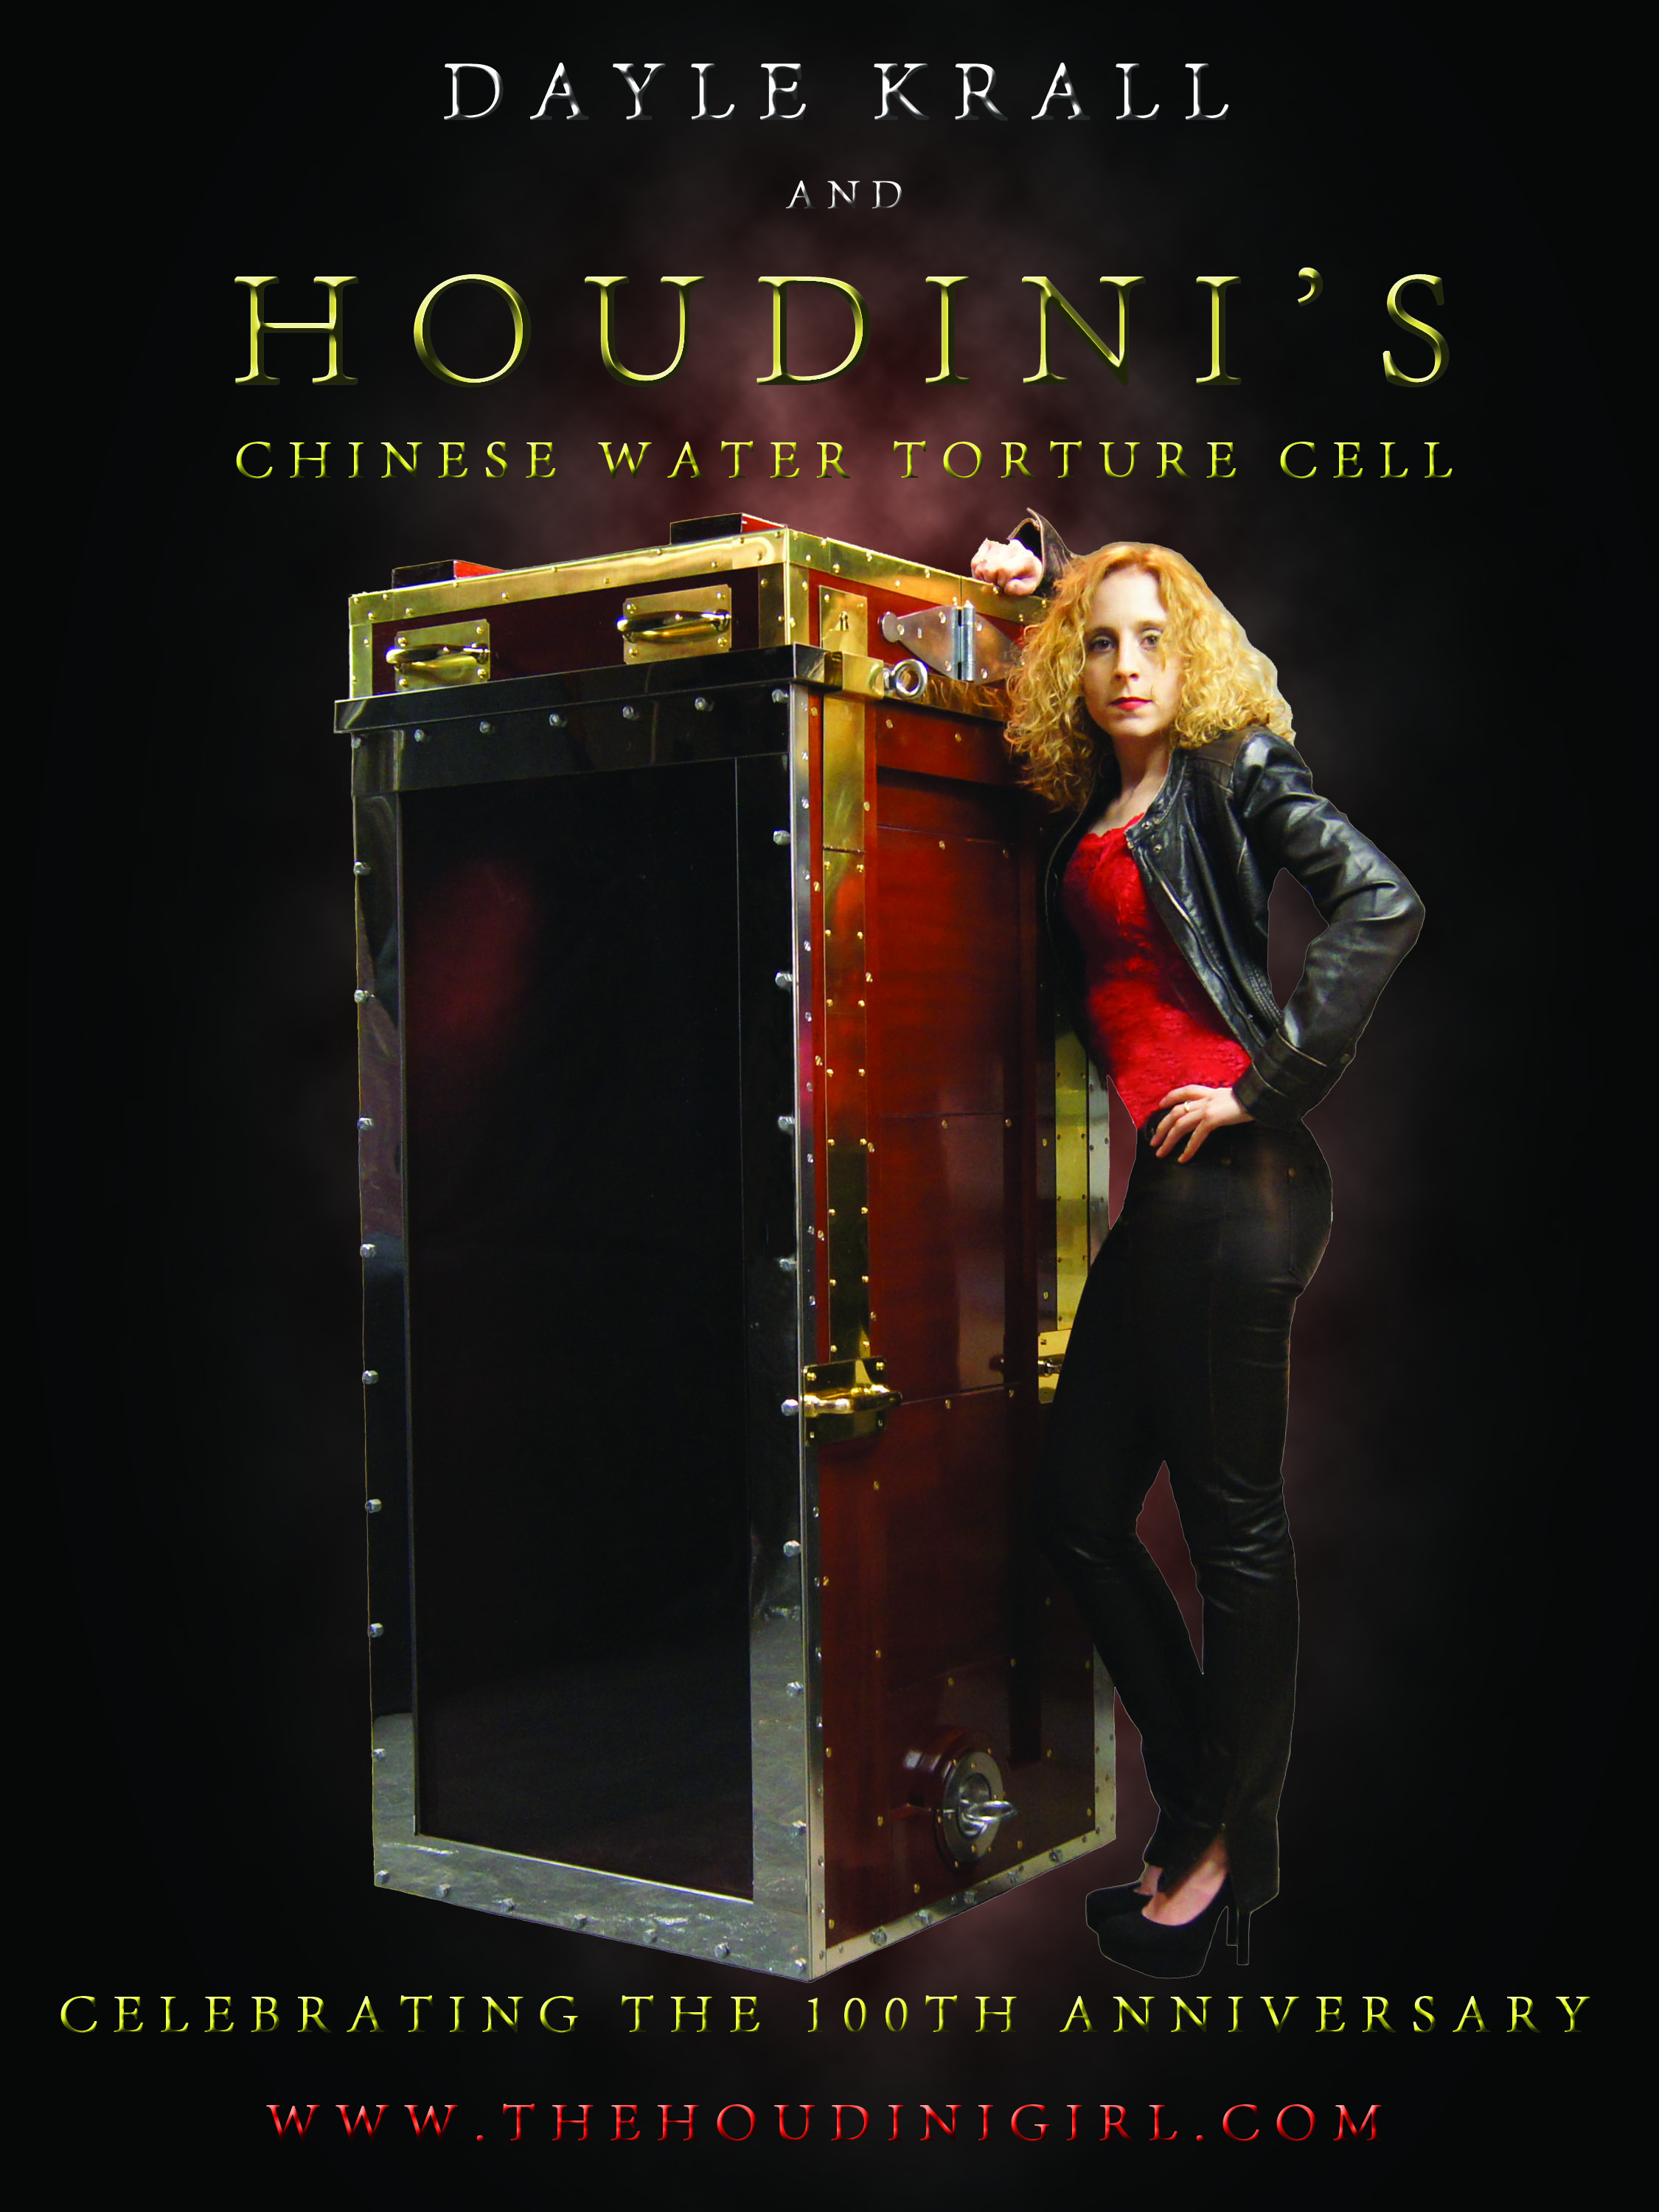 Dayle Krall with Houdini's Chinese Water Torture Cell